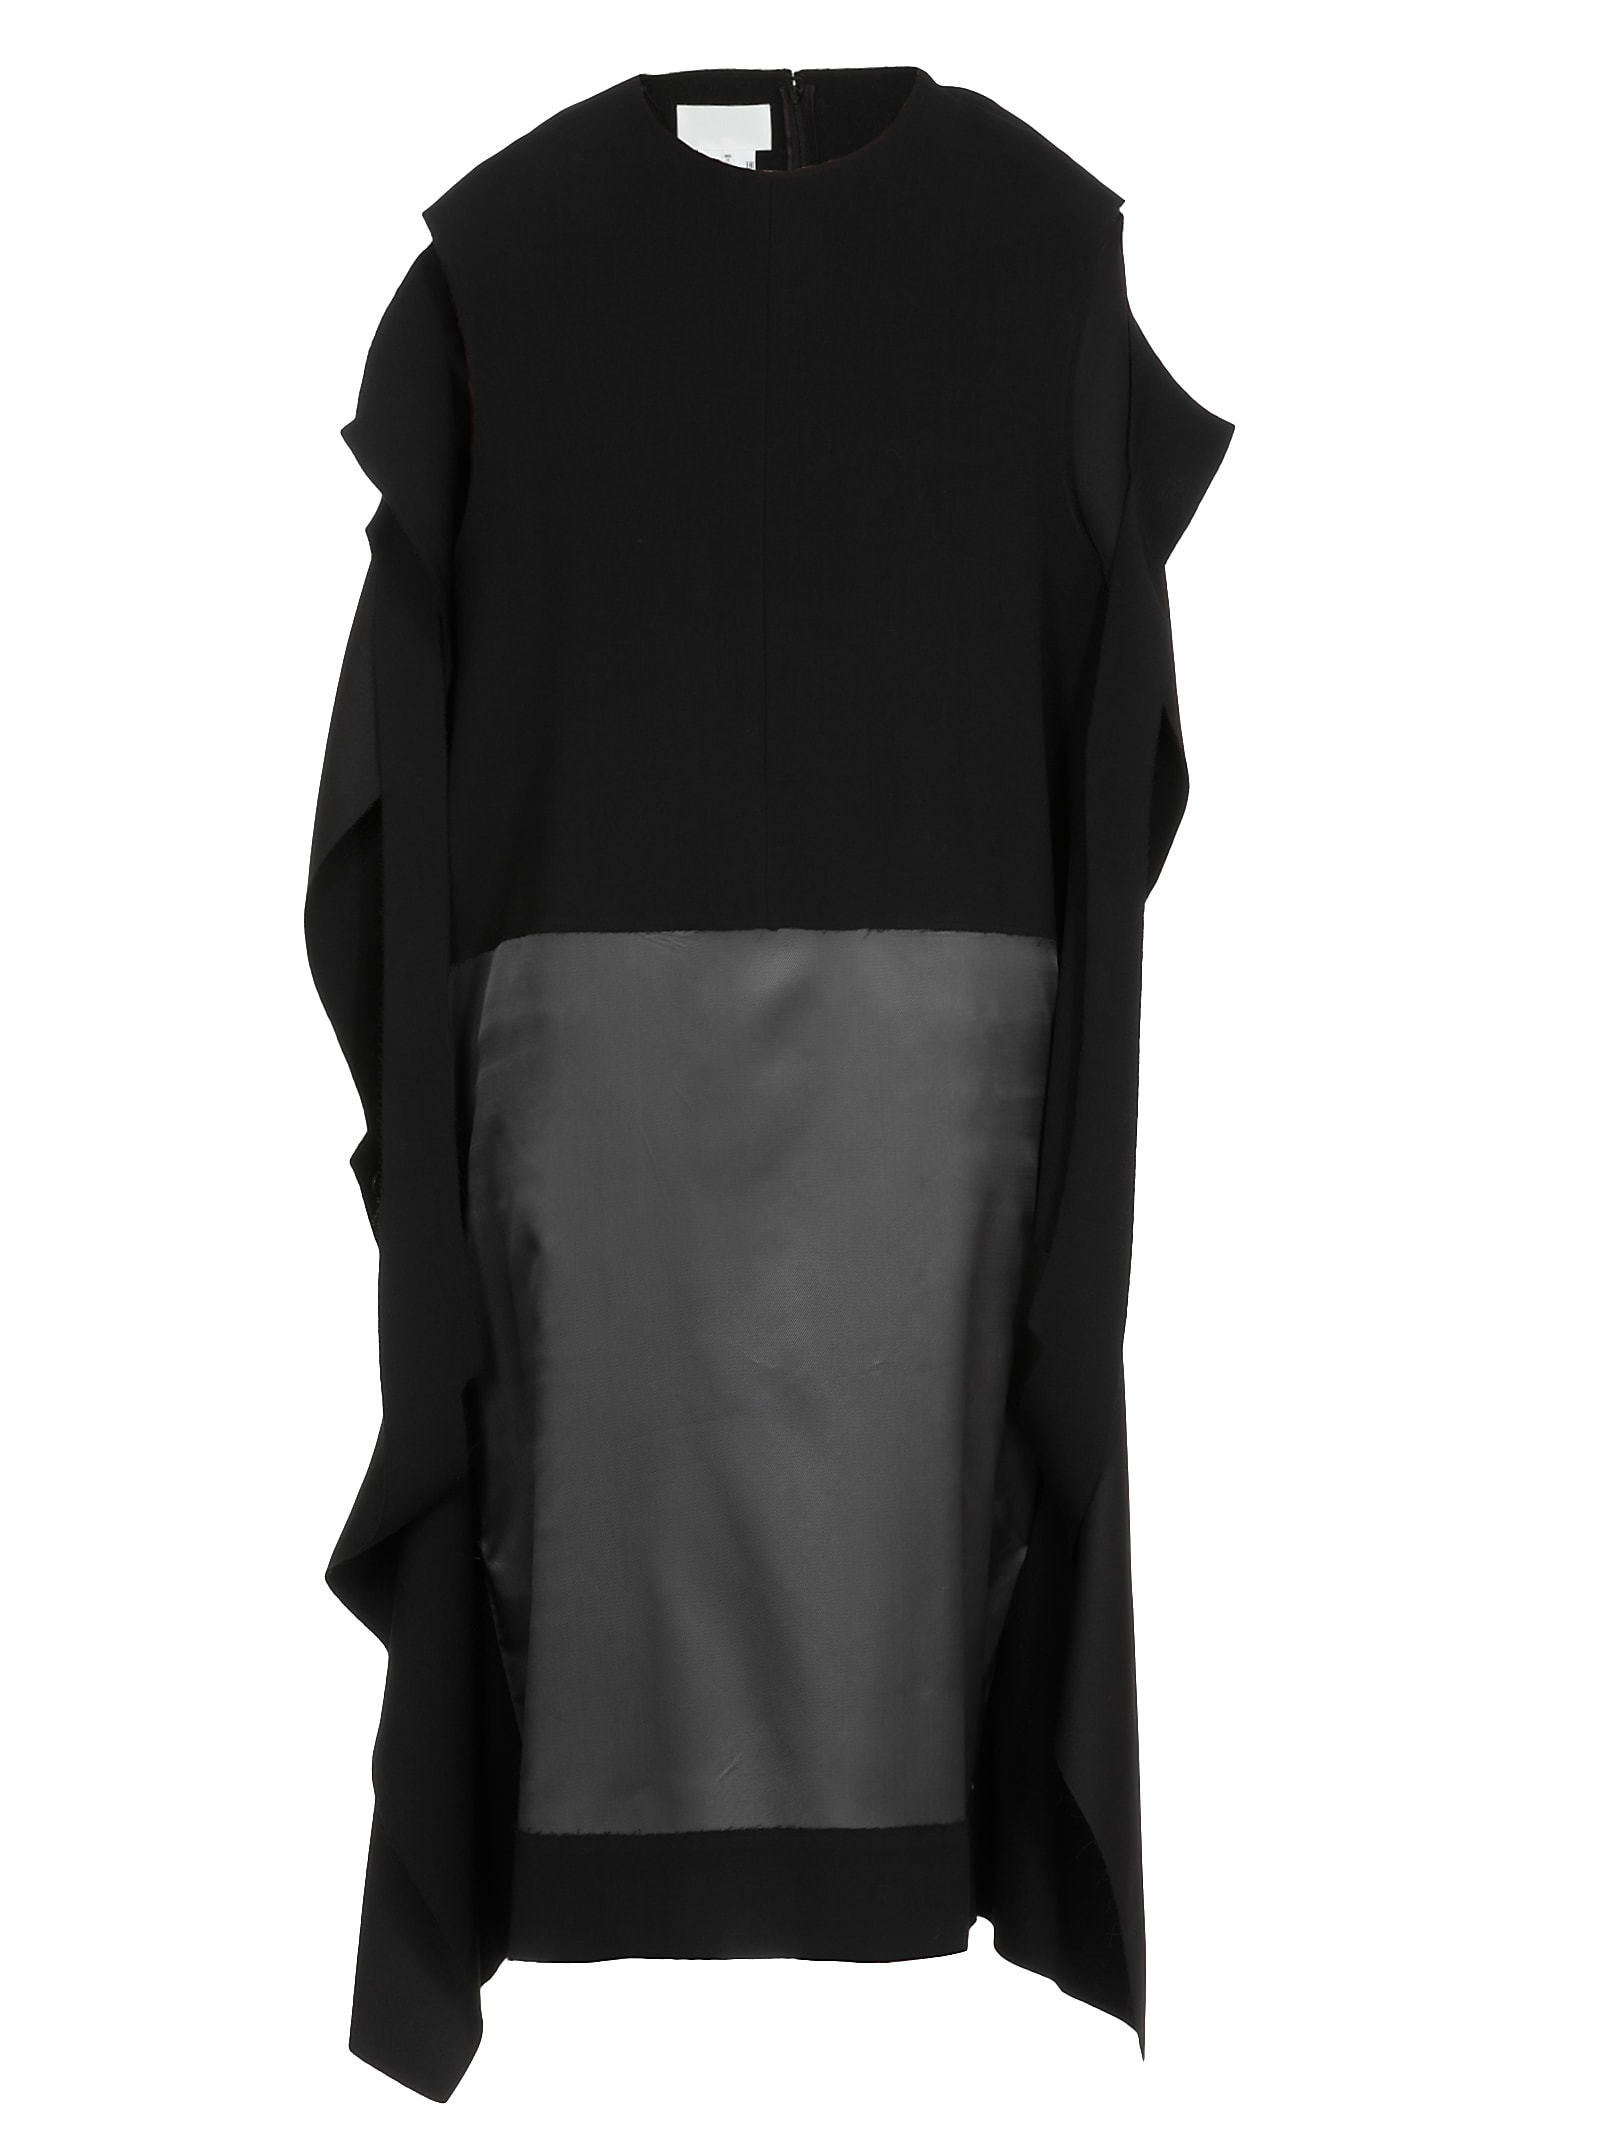 Maison Margiela Deconstructed Blend Dress